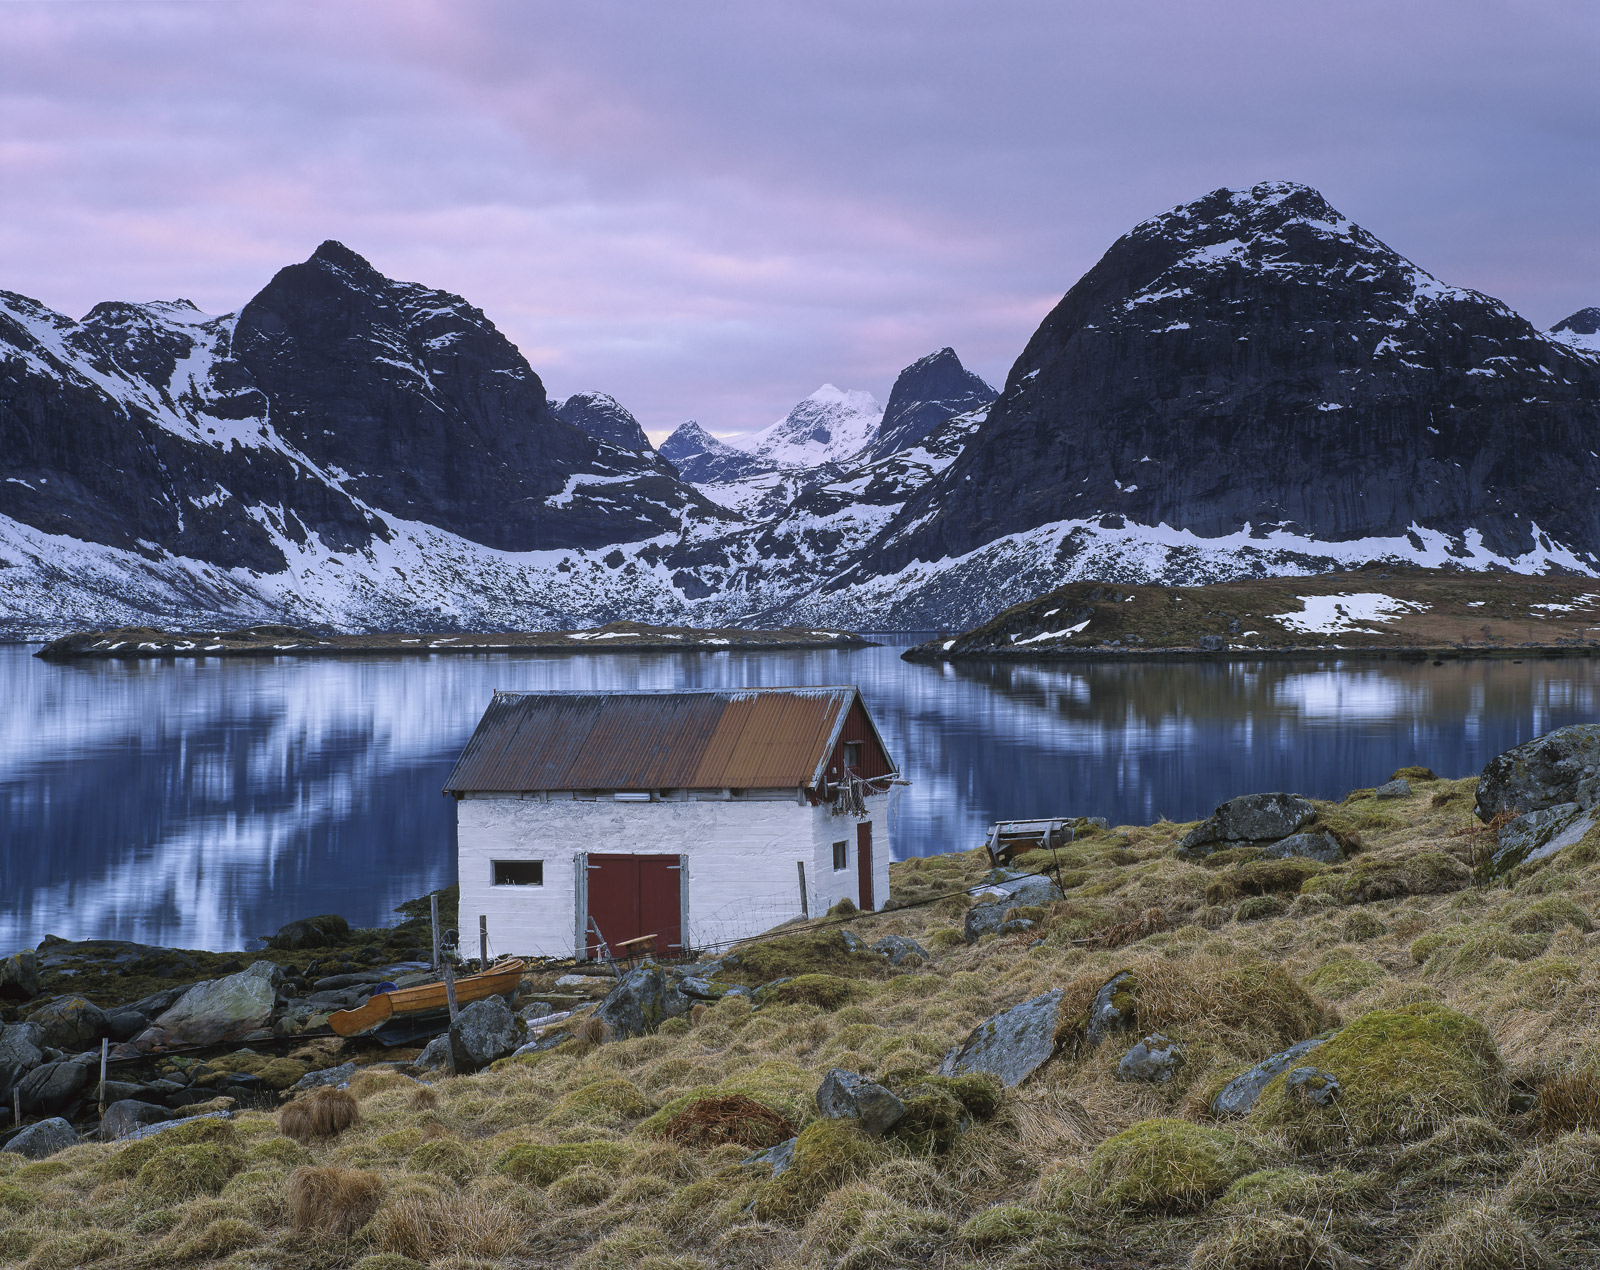 I came across this little white boat shed, a perfectly beautiful fisherman's retreat and a wonderful example of man's symbiotic...